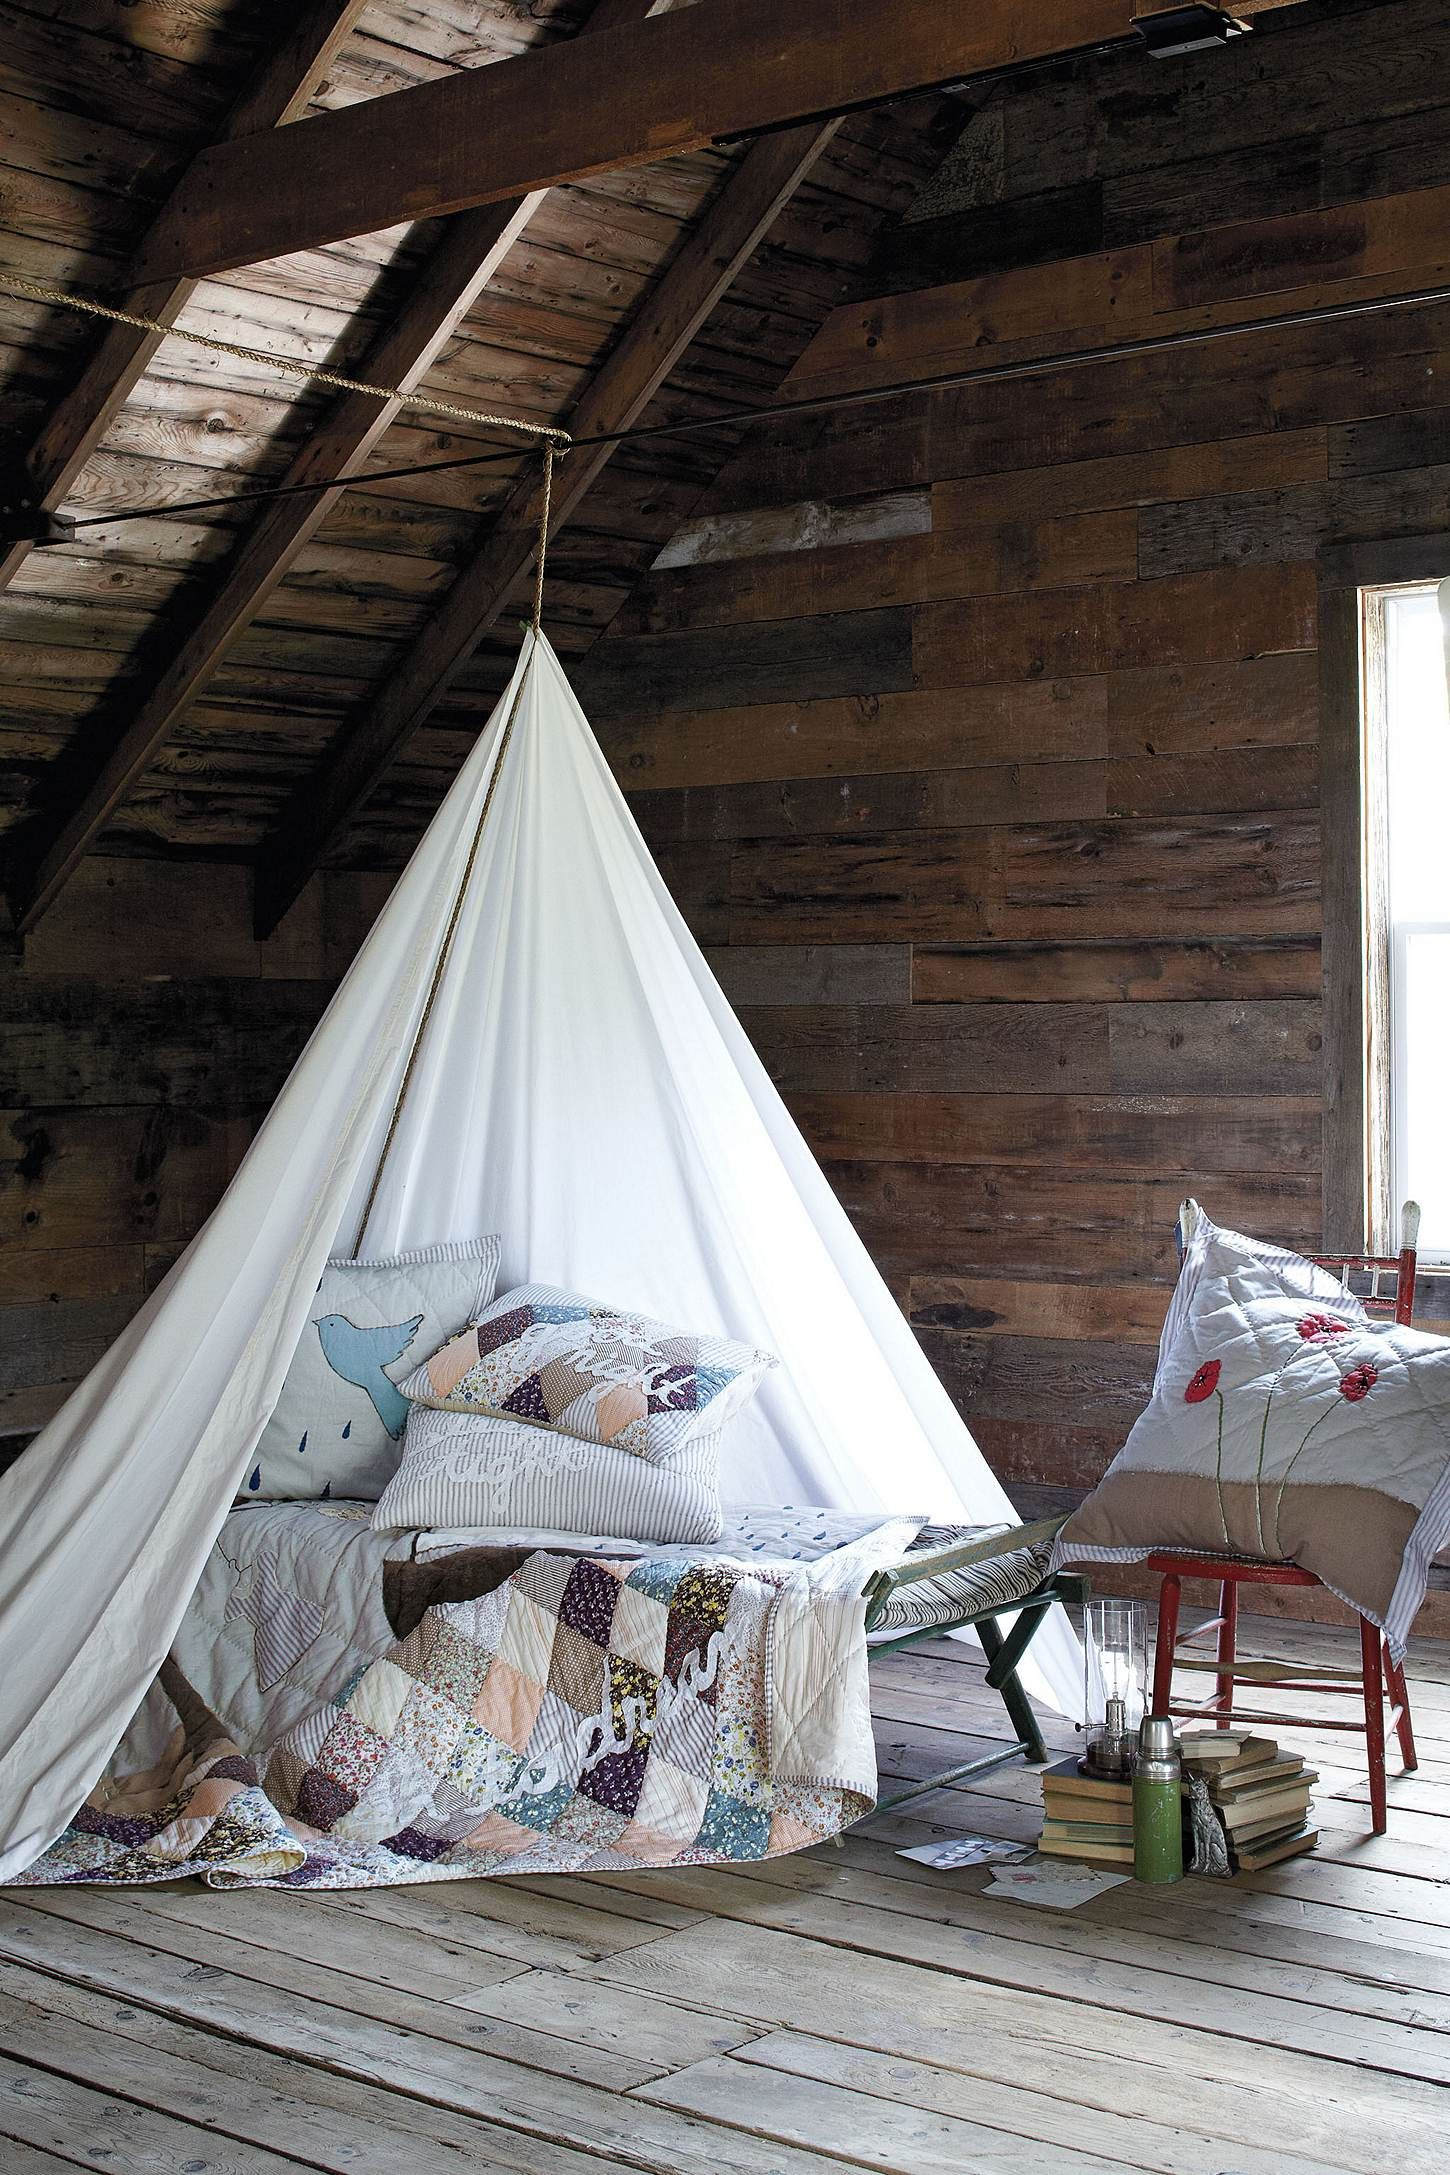 I love tents and forts. What a cheep fun way to make an indoor tent.